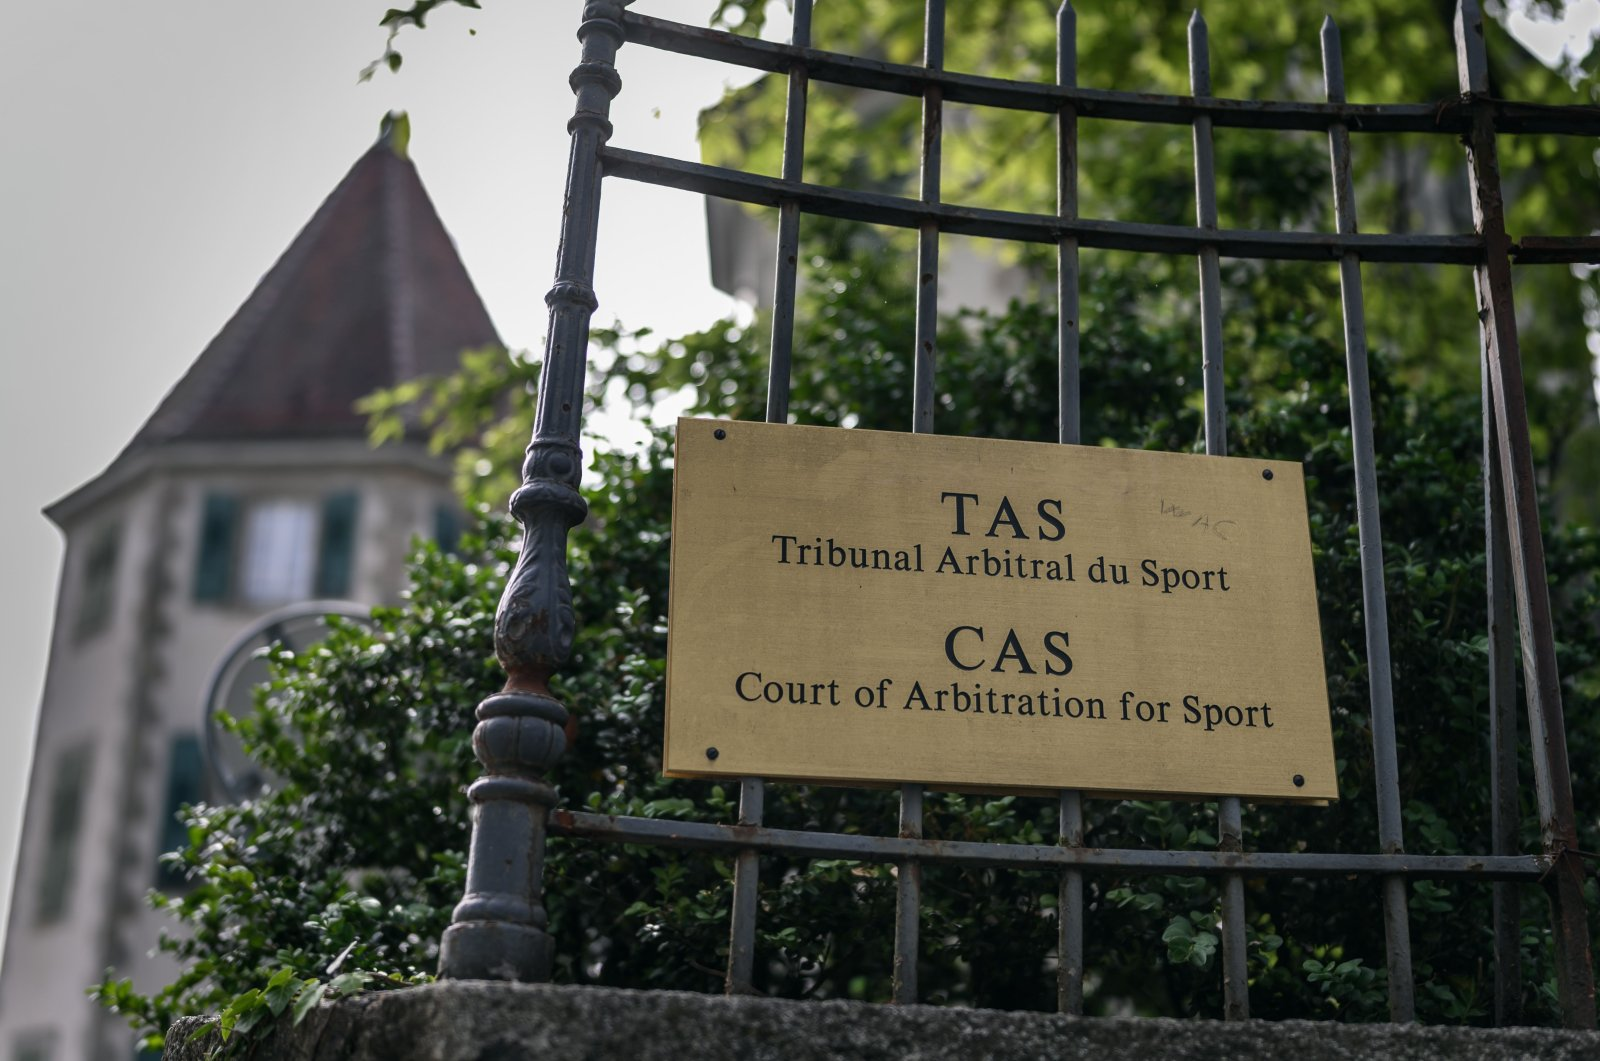 This picture taken on June 8, 2020, shows a sign at the entrance of the Court of Arbitration for Sport (CAS) in Lausanne, Switzerland. (AFP Photo)